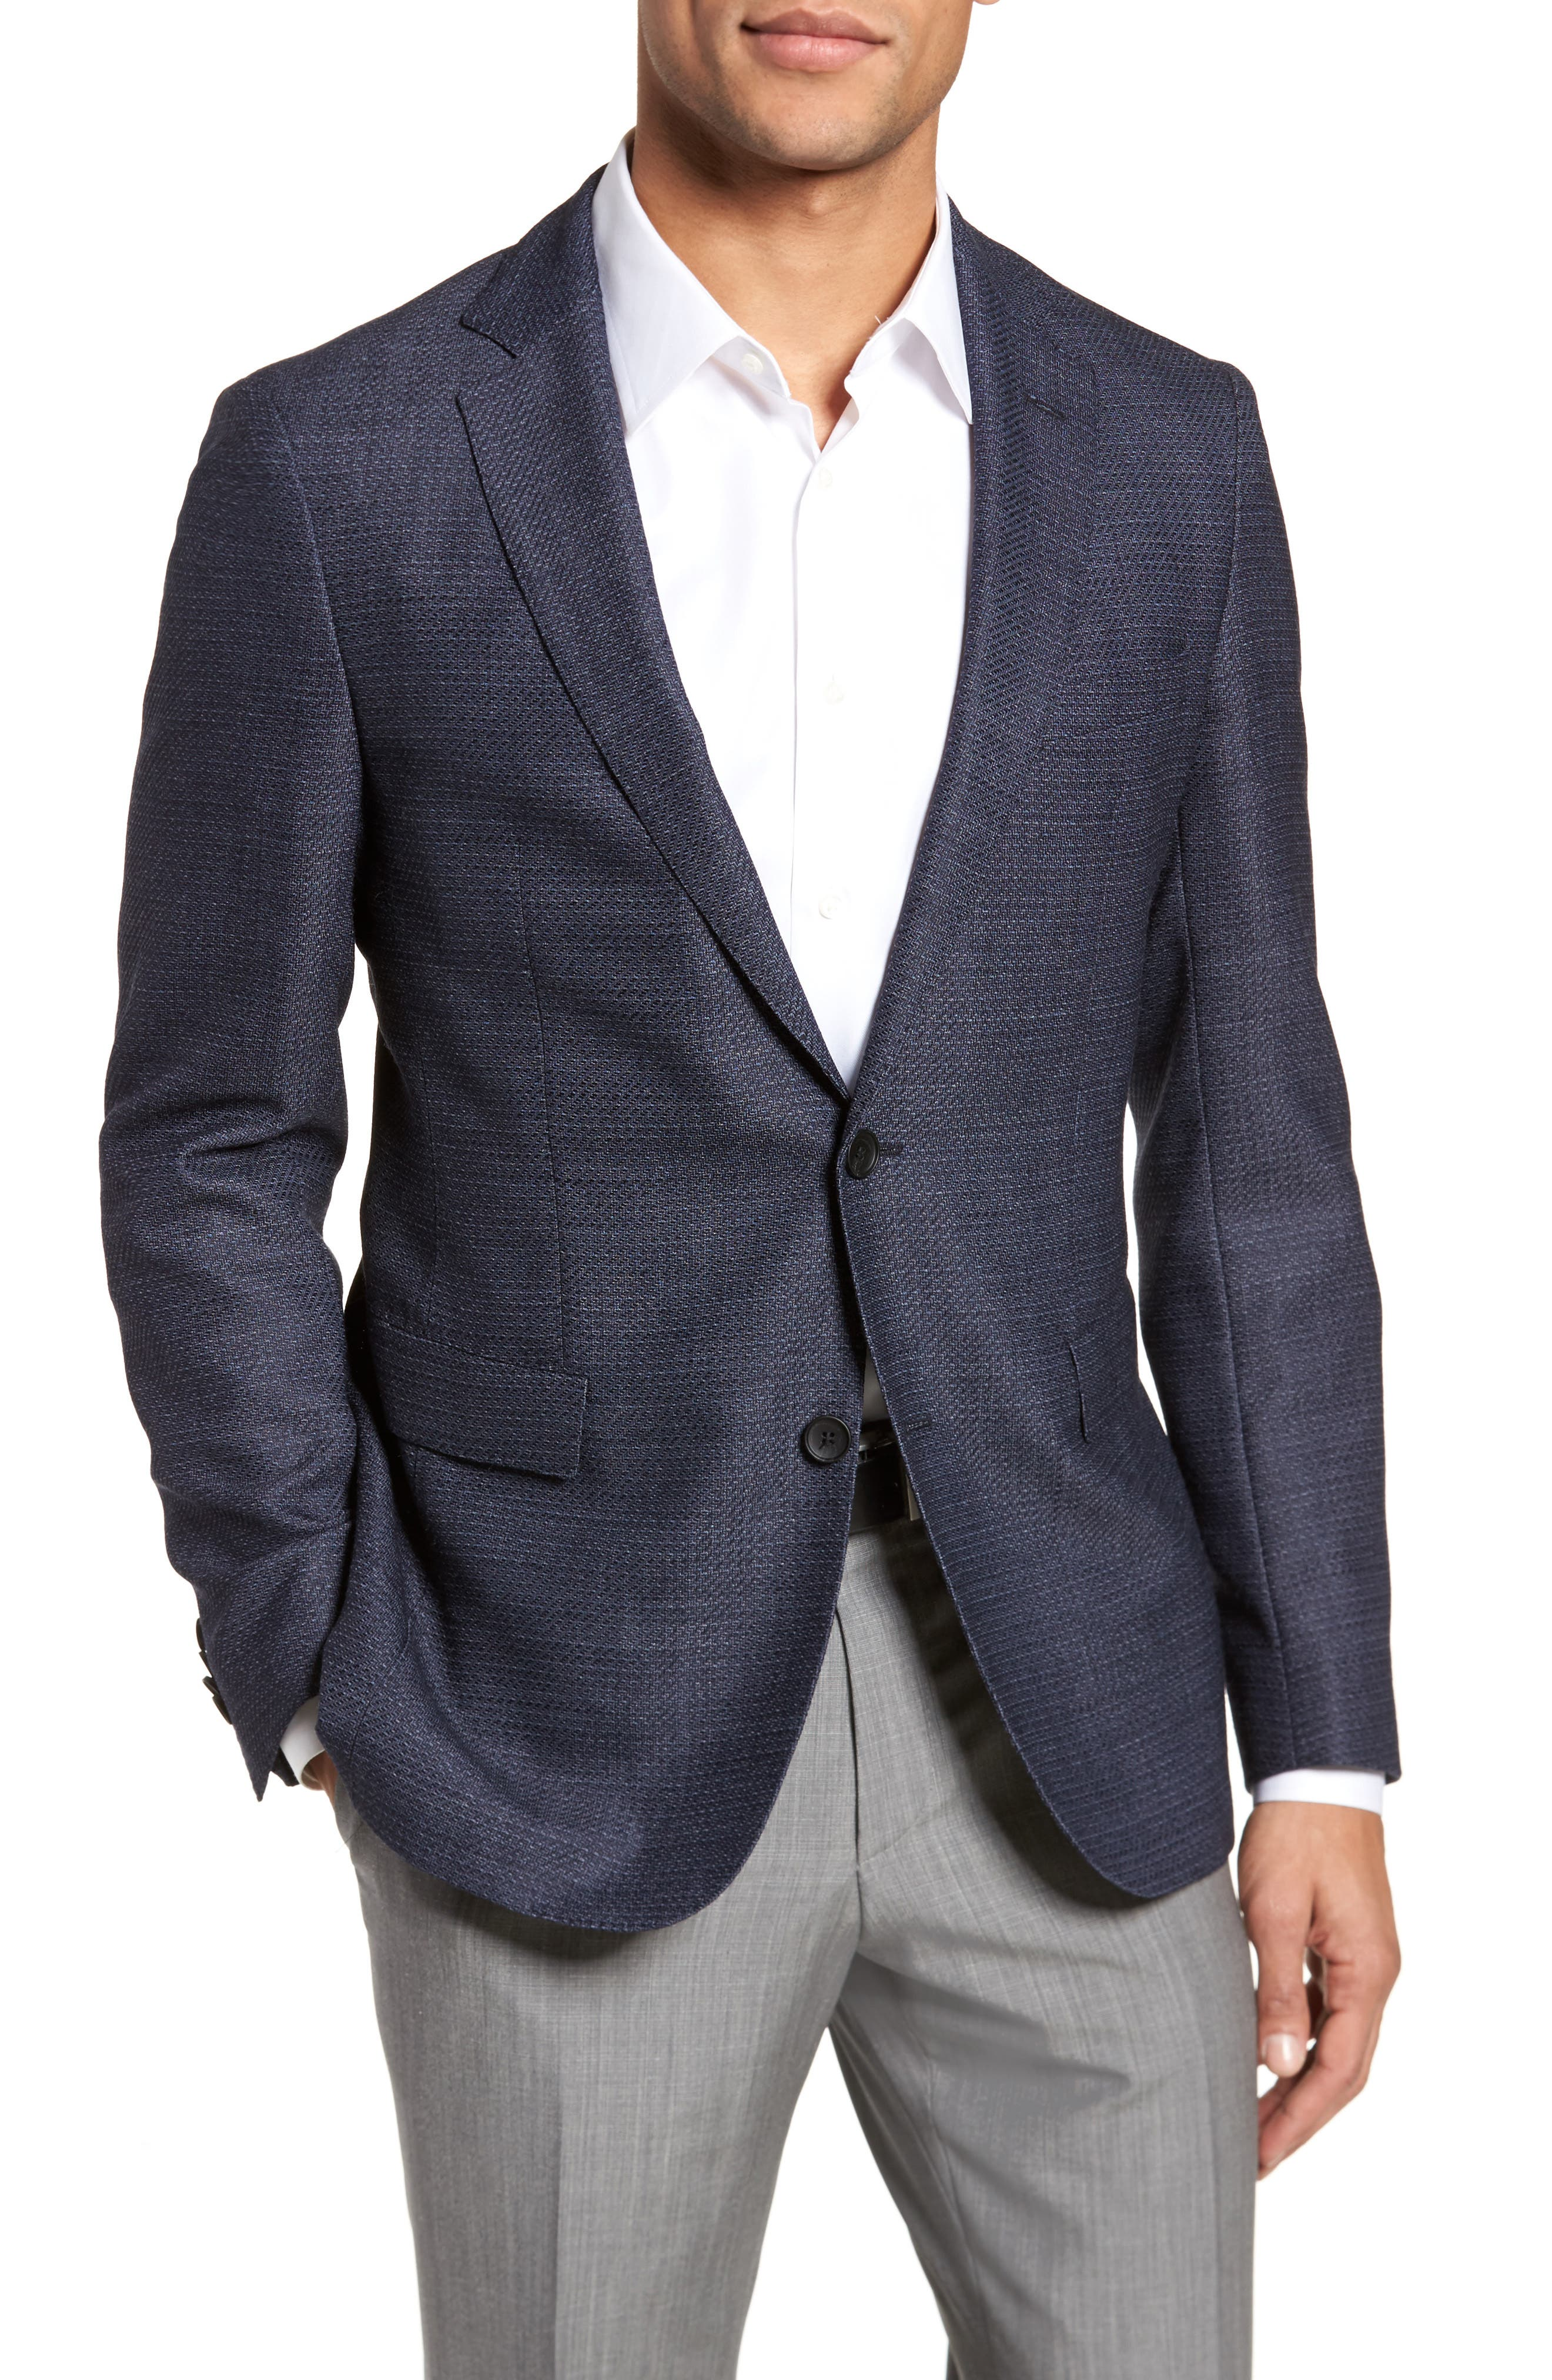 Roan Extra Trim Fit Stretch Wool Blend Blazer,                             Main thumbnail 1, color,                             Navy